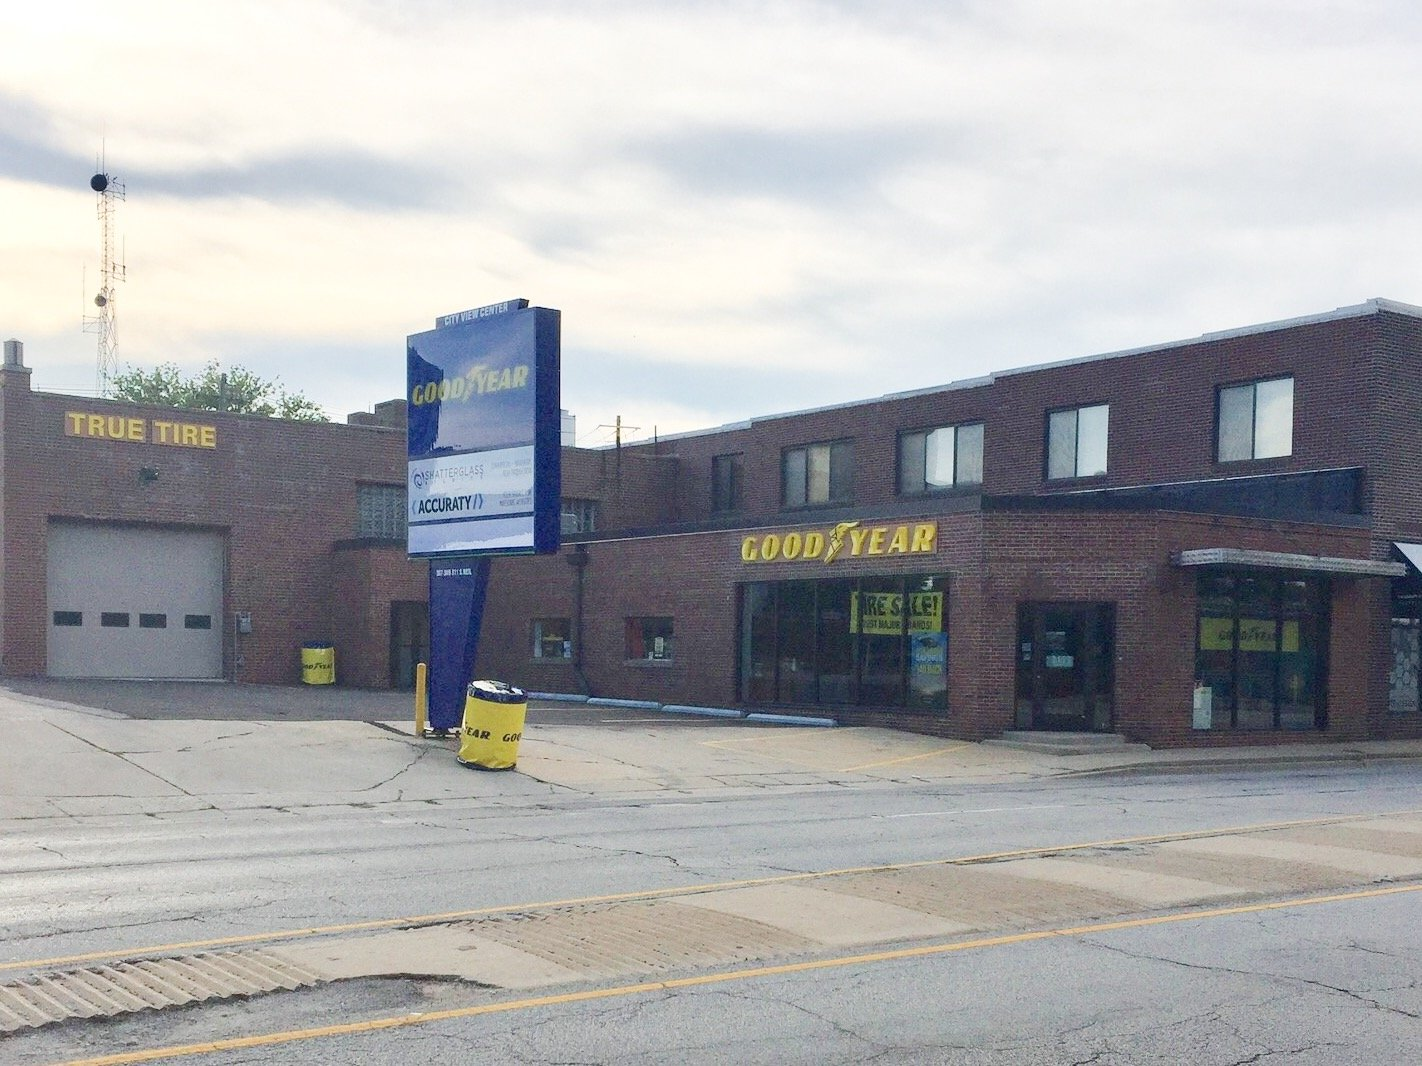 True Tires and Automotive Company Goodyear